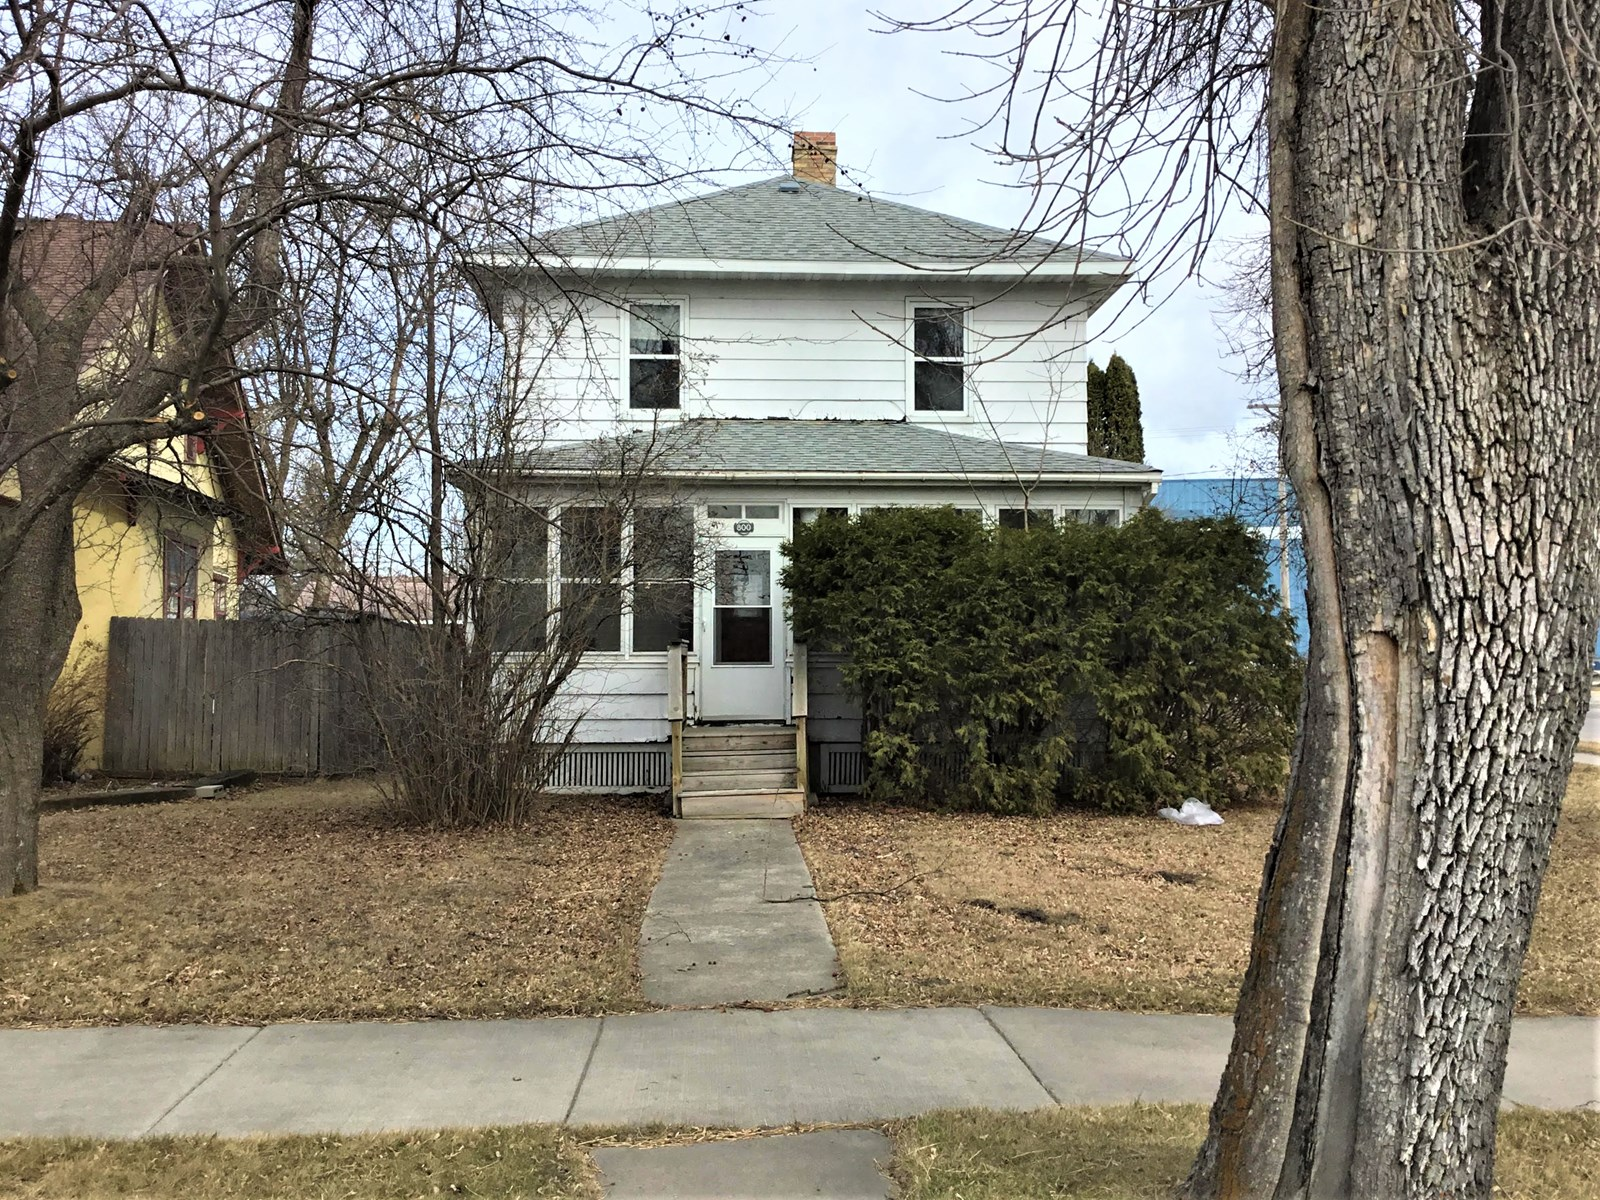 Home in town for sale in International Falls MN